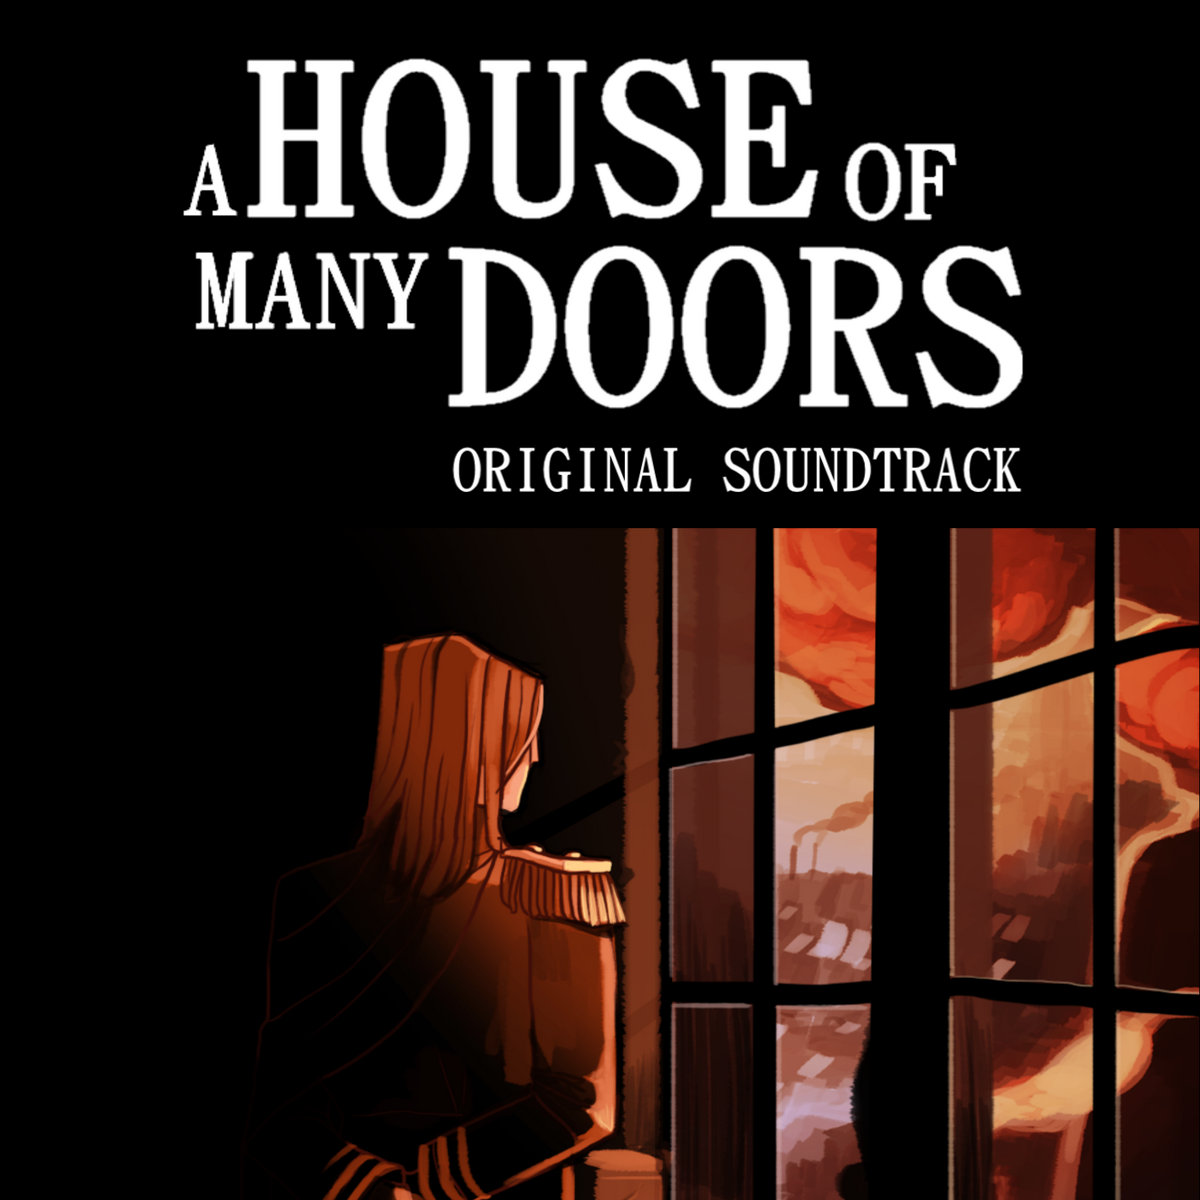 A House of Many Doors  sc 1 st  Bandc& & A House of Many Doors | Zach Beever